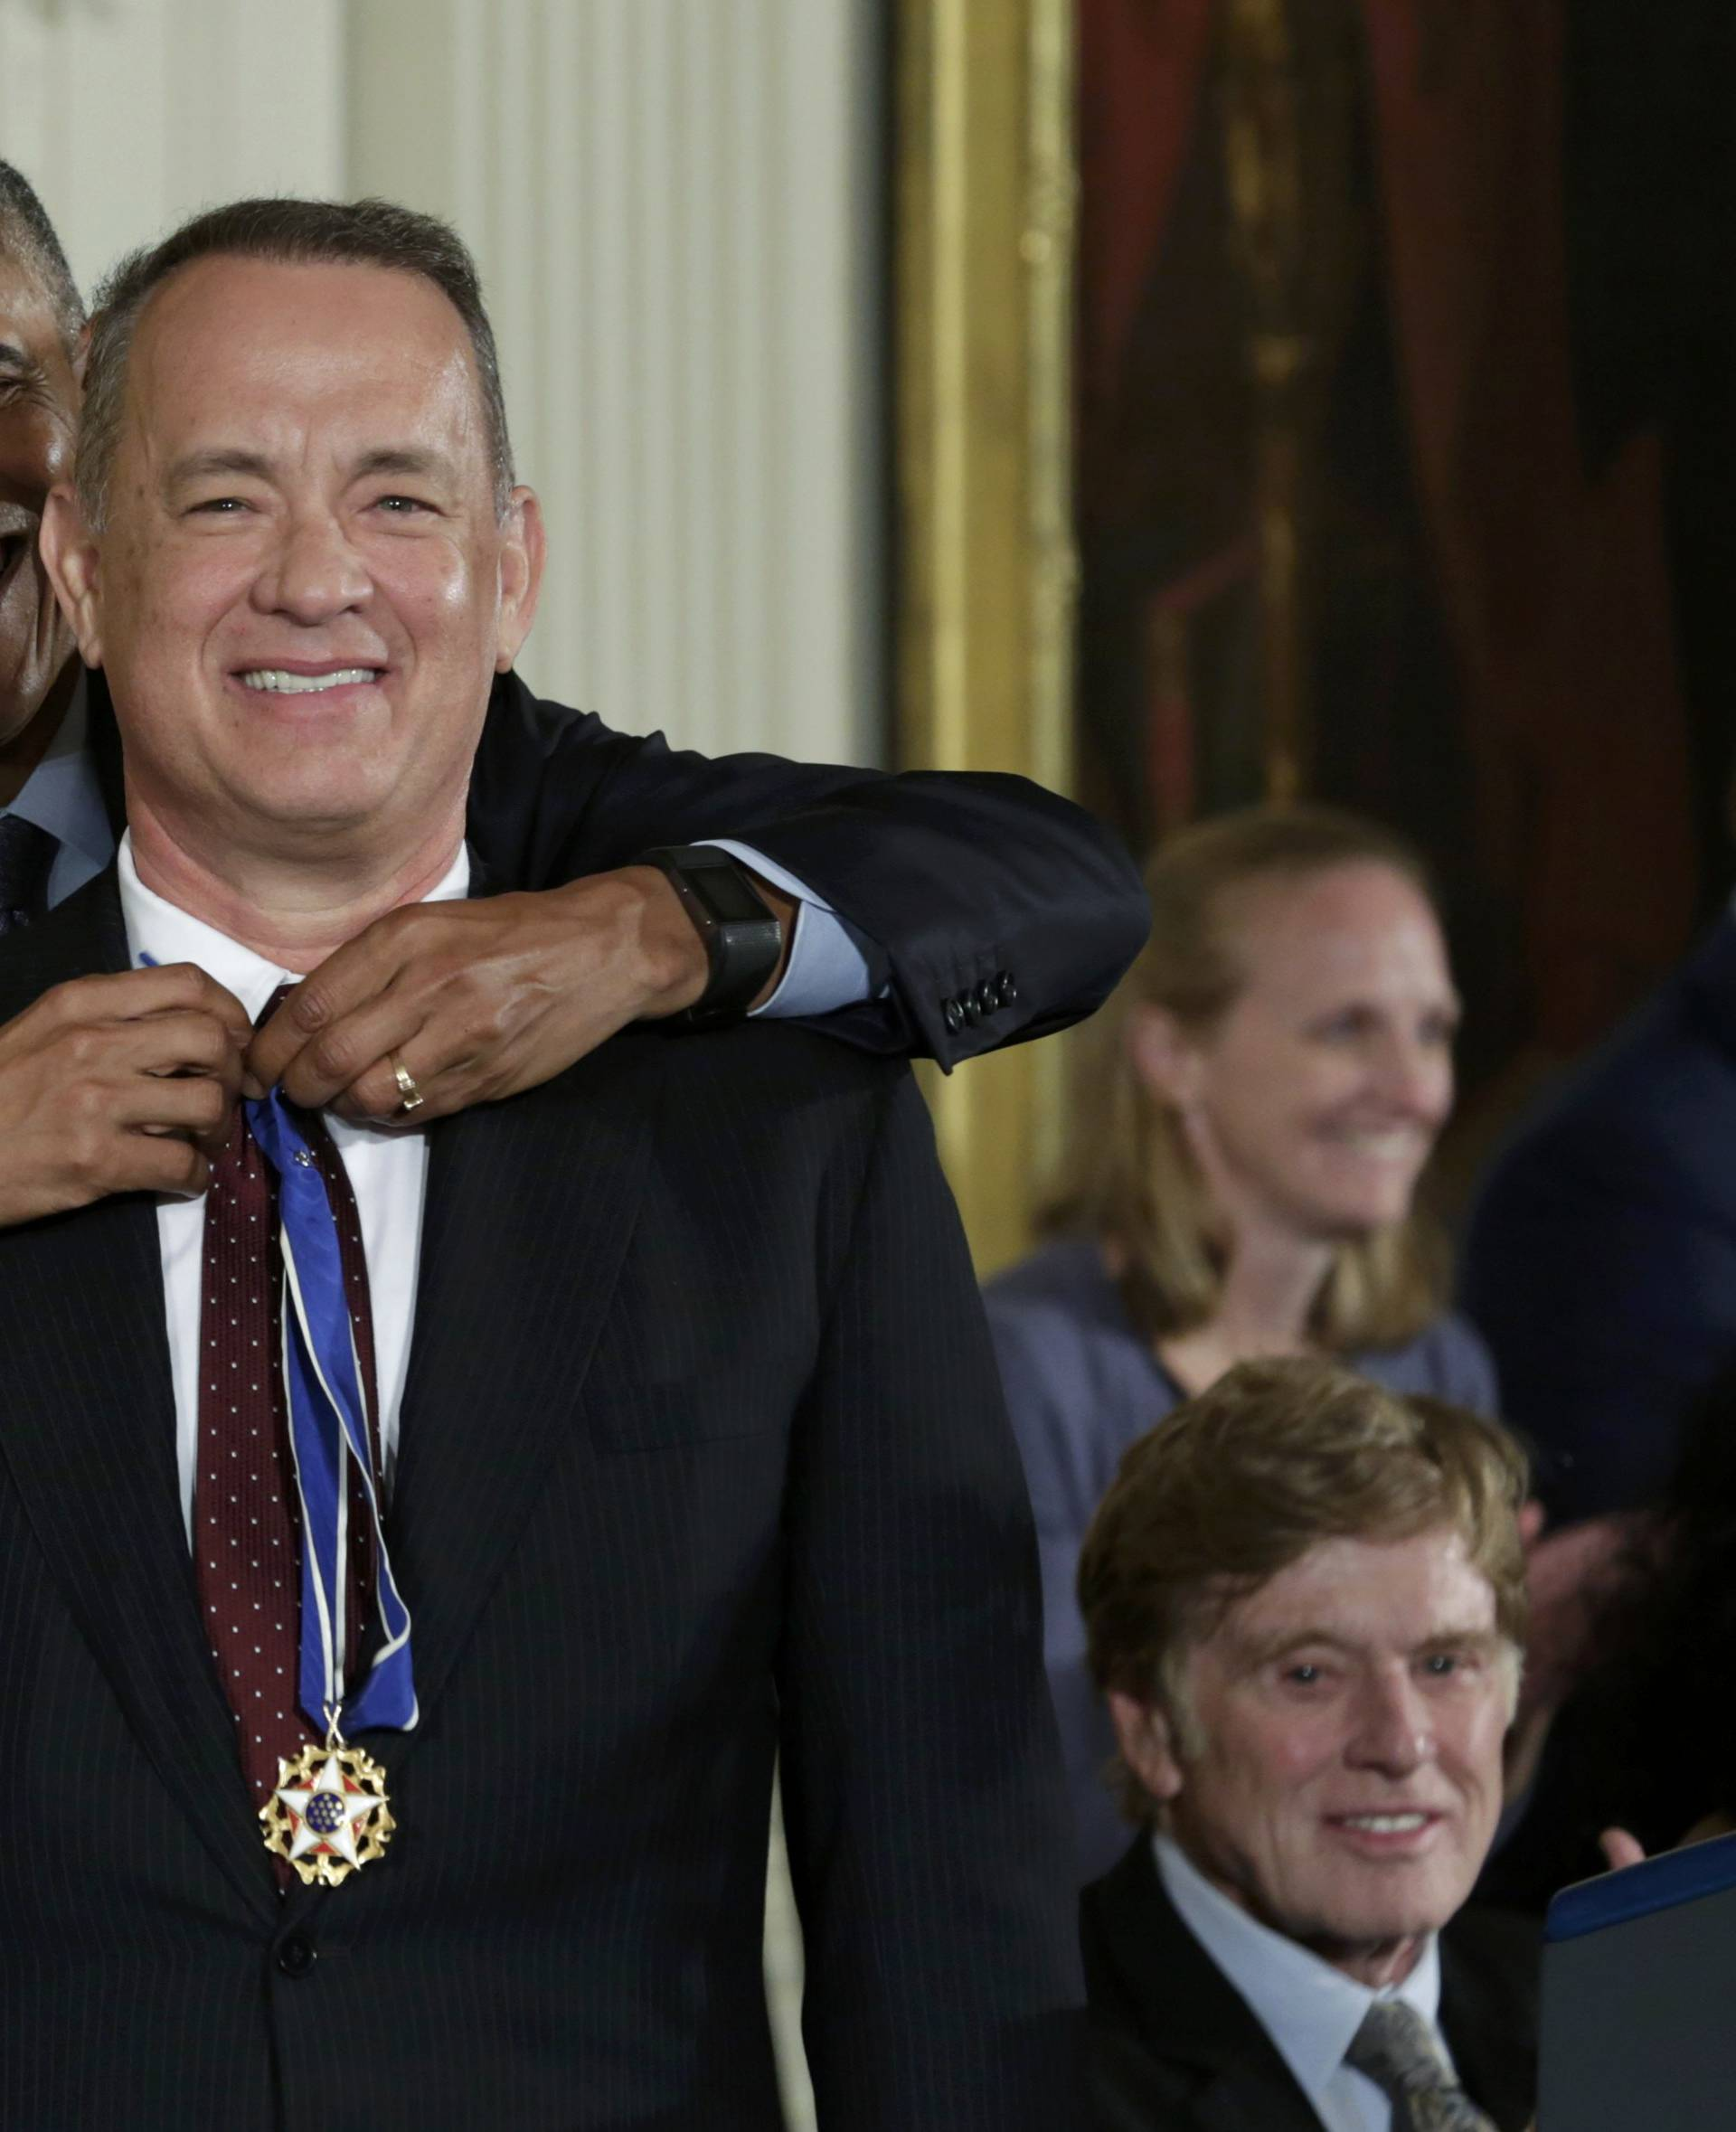 U.S. President Obama presents the Presidential Medal of Freedom to actor Hanks during ceremony at the White House in Washington